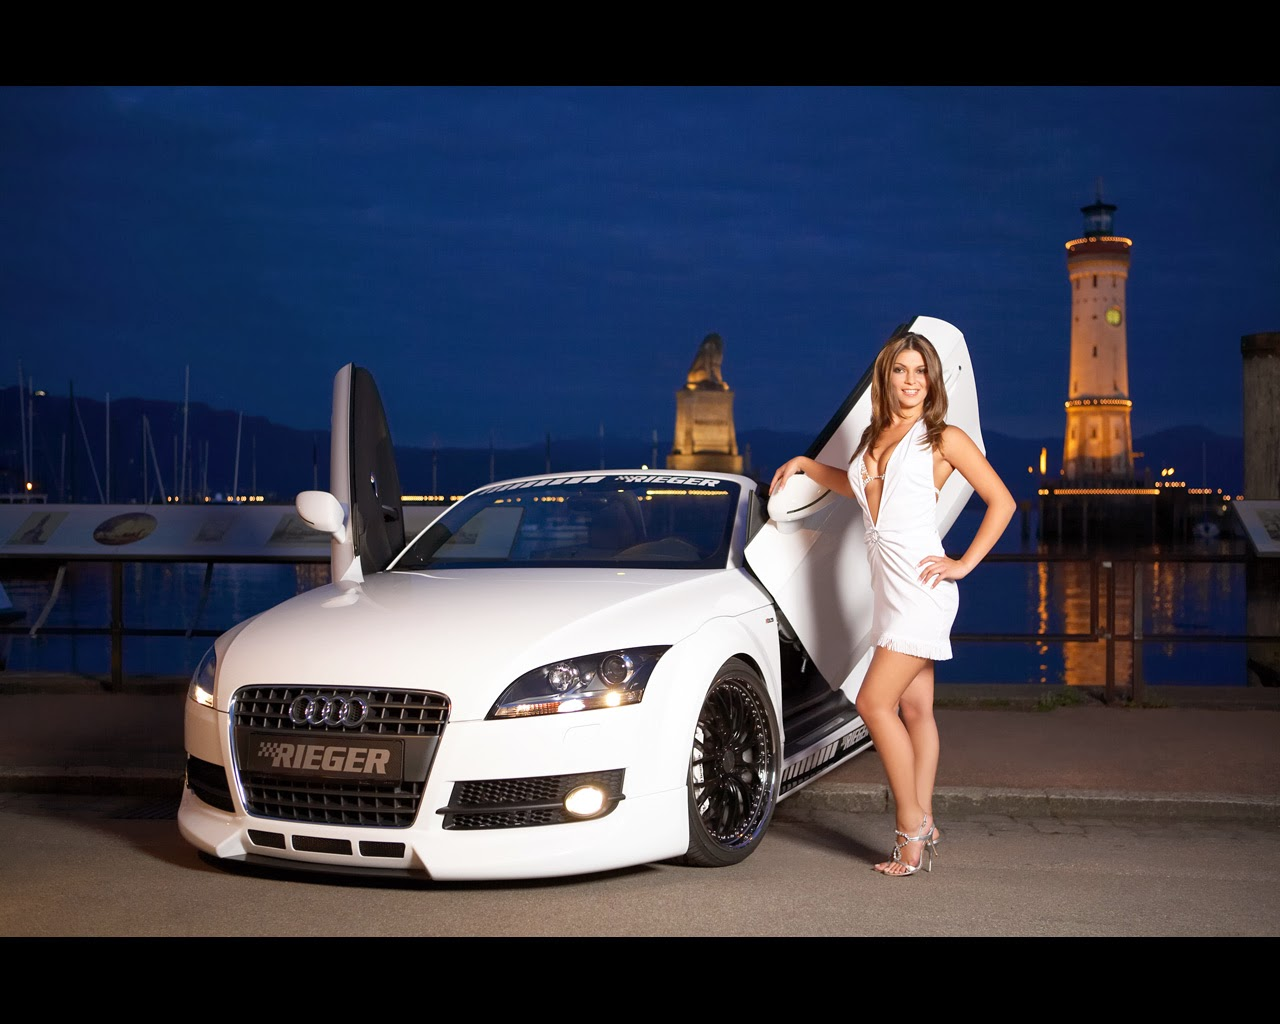 White-Audi-car-with-hot-girl-in-white-dress-HD-photo.jpg